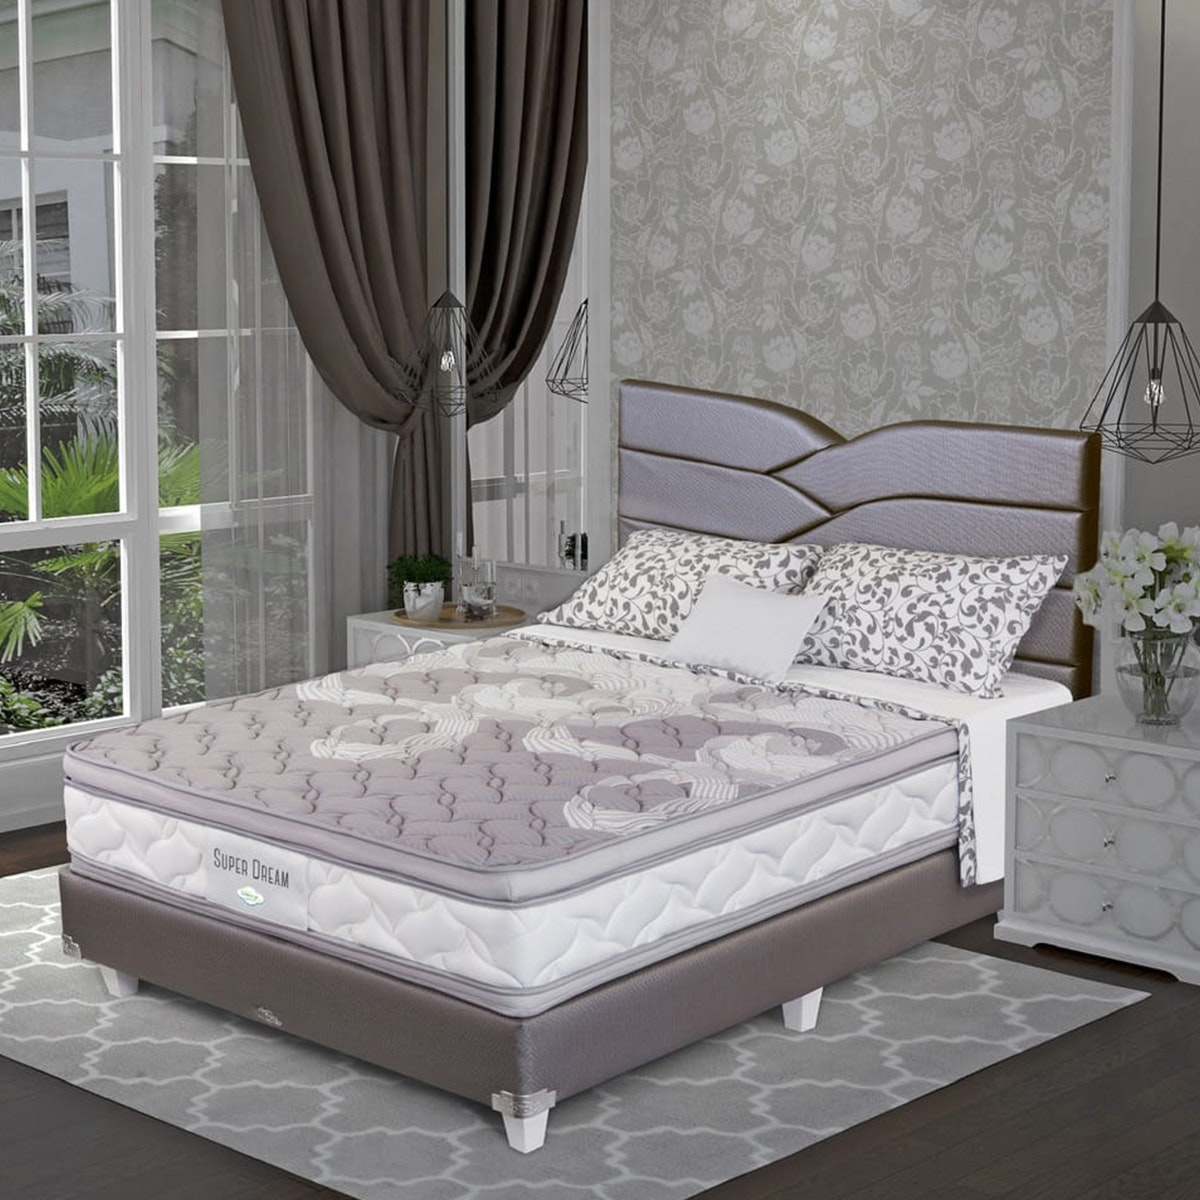 Comforta Kasur Super Dream Uk 160x200